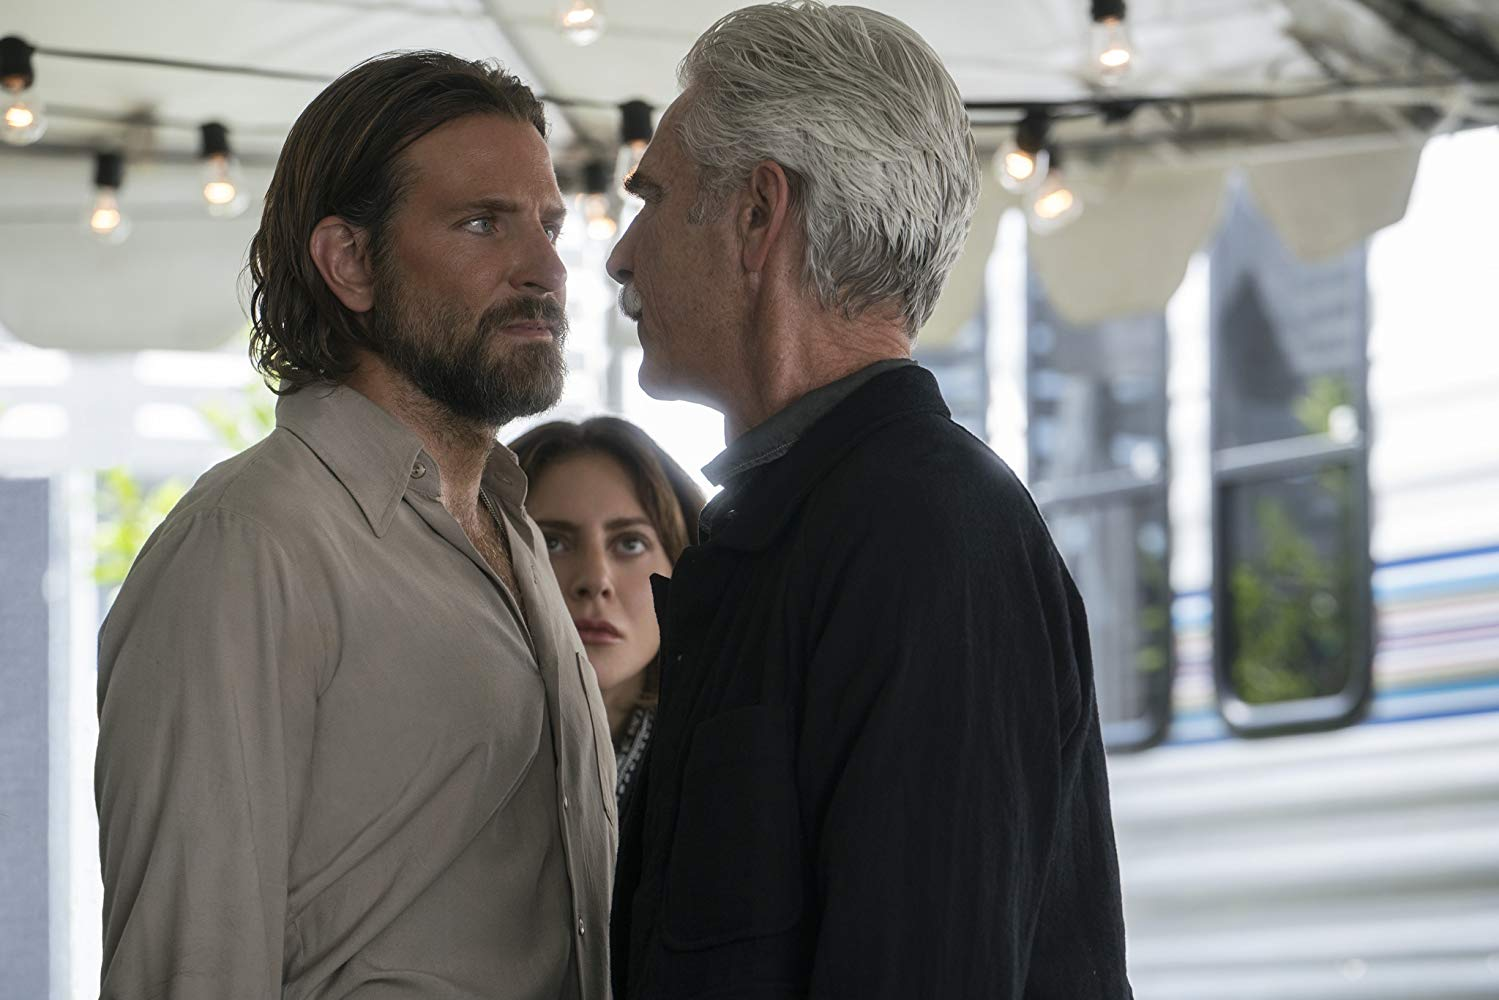 Jack (Bradley Cooper) facing his brother Bobby (Sam Elliott), with Ally (Lady Gaga watching in the background.